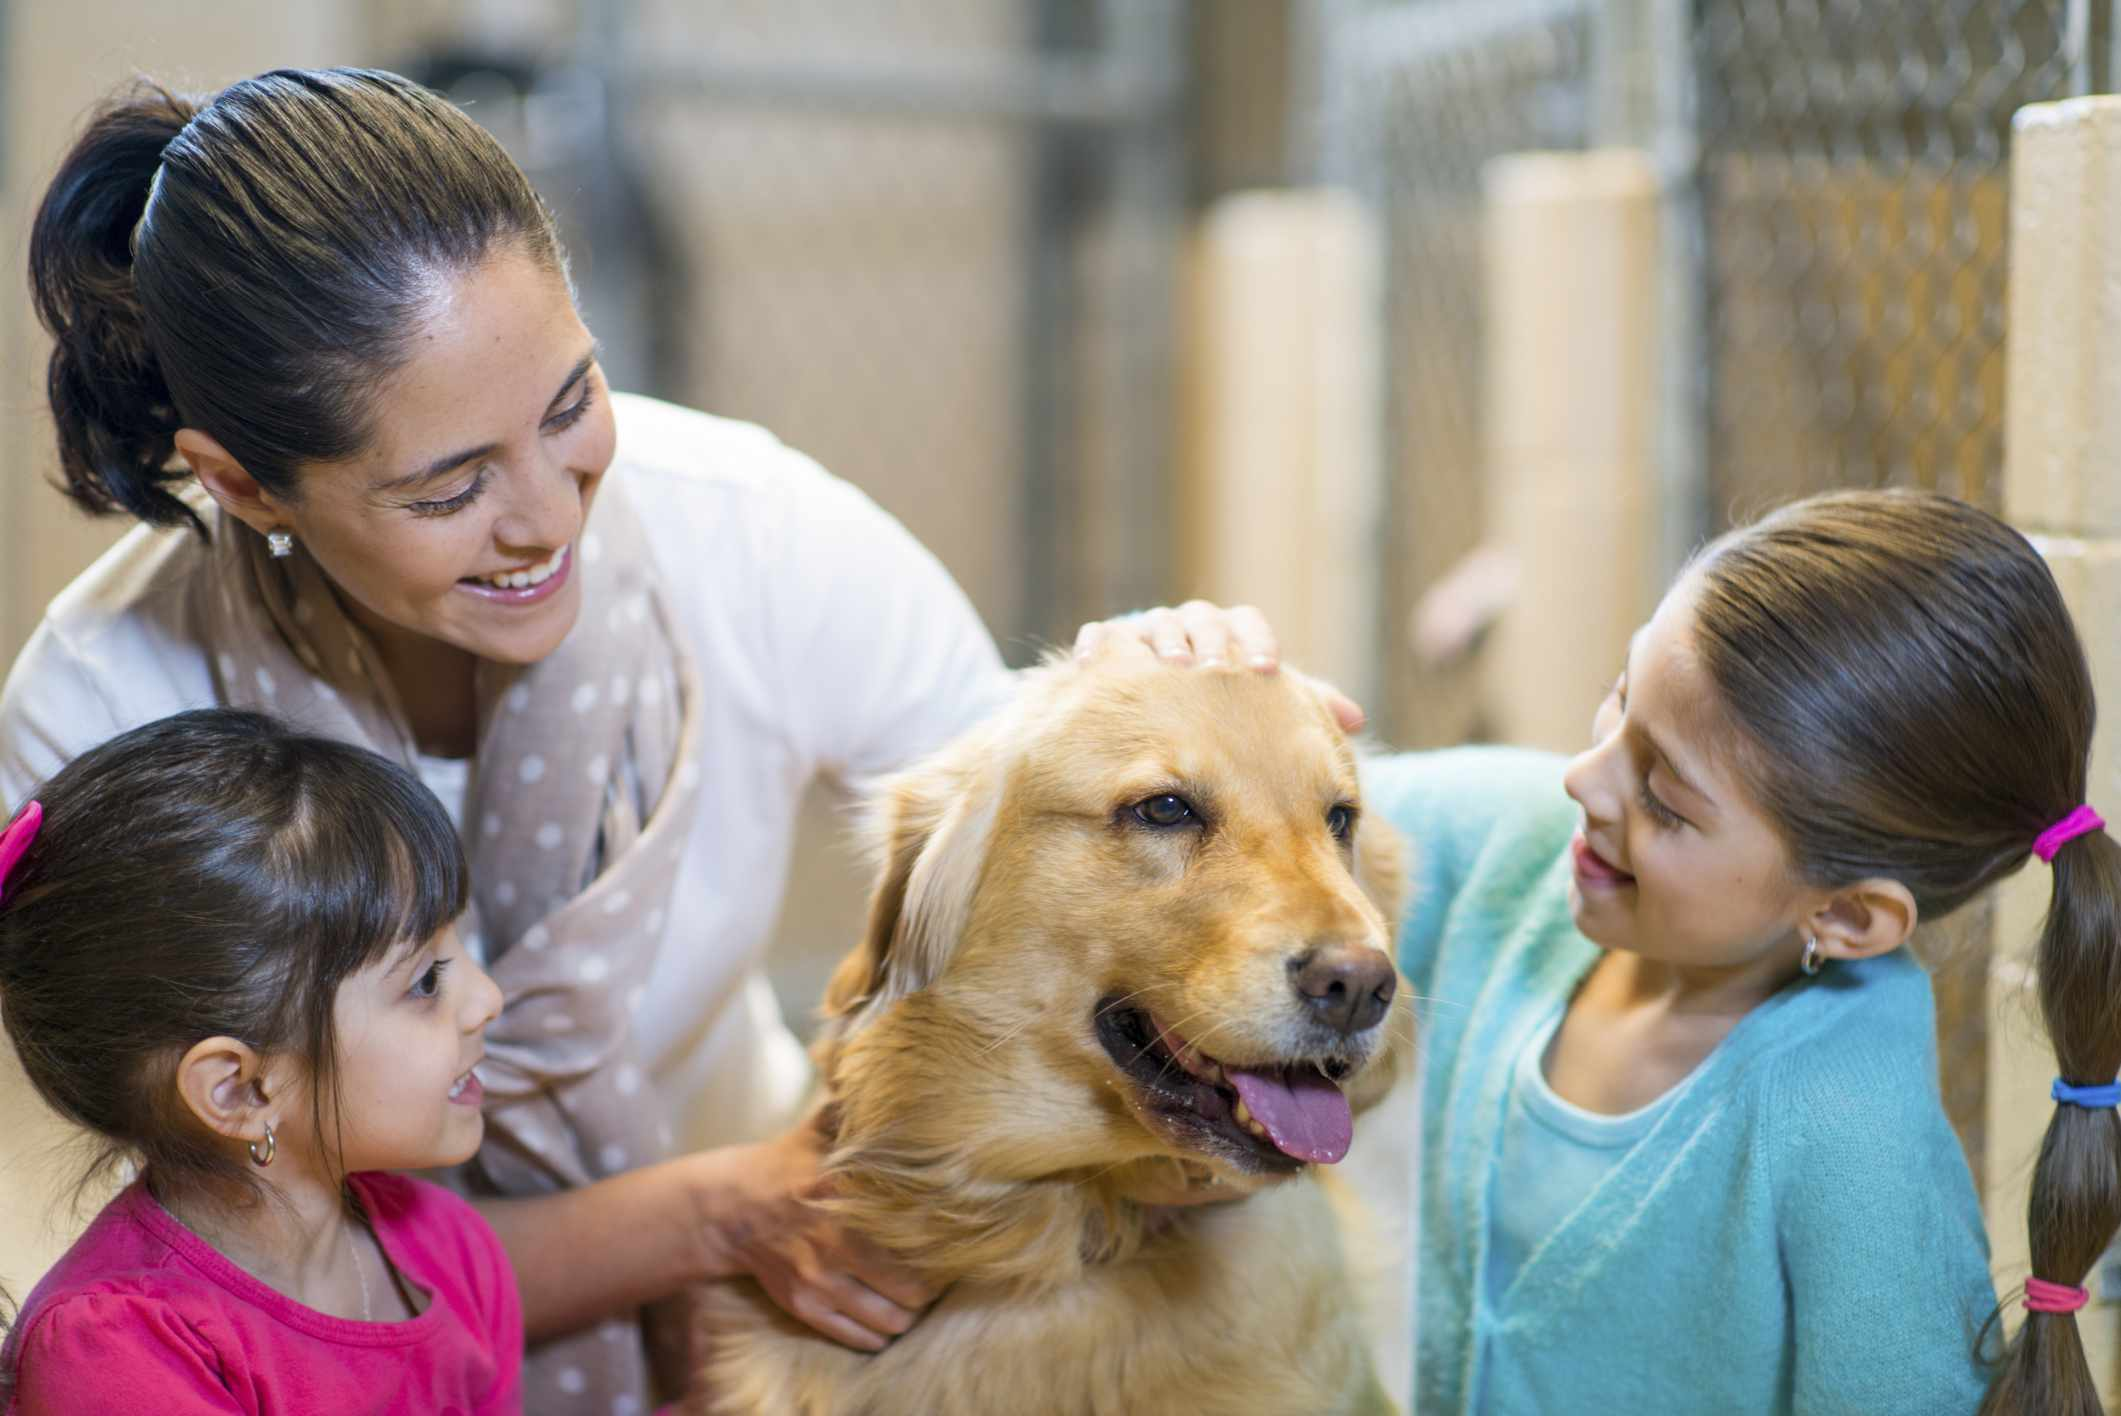 A family at the animal shelter.